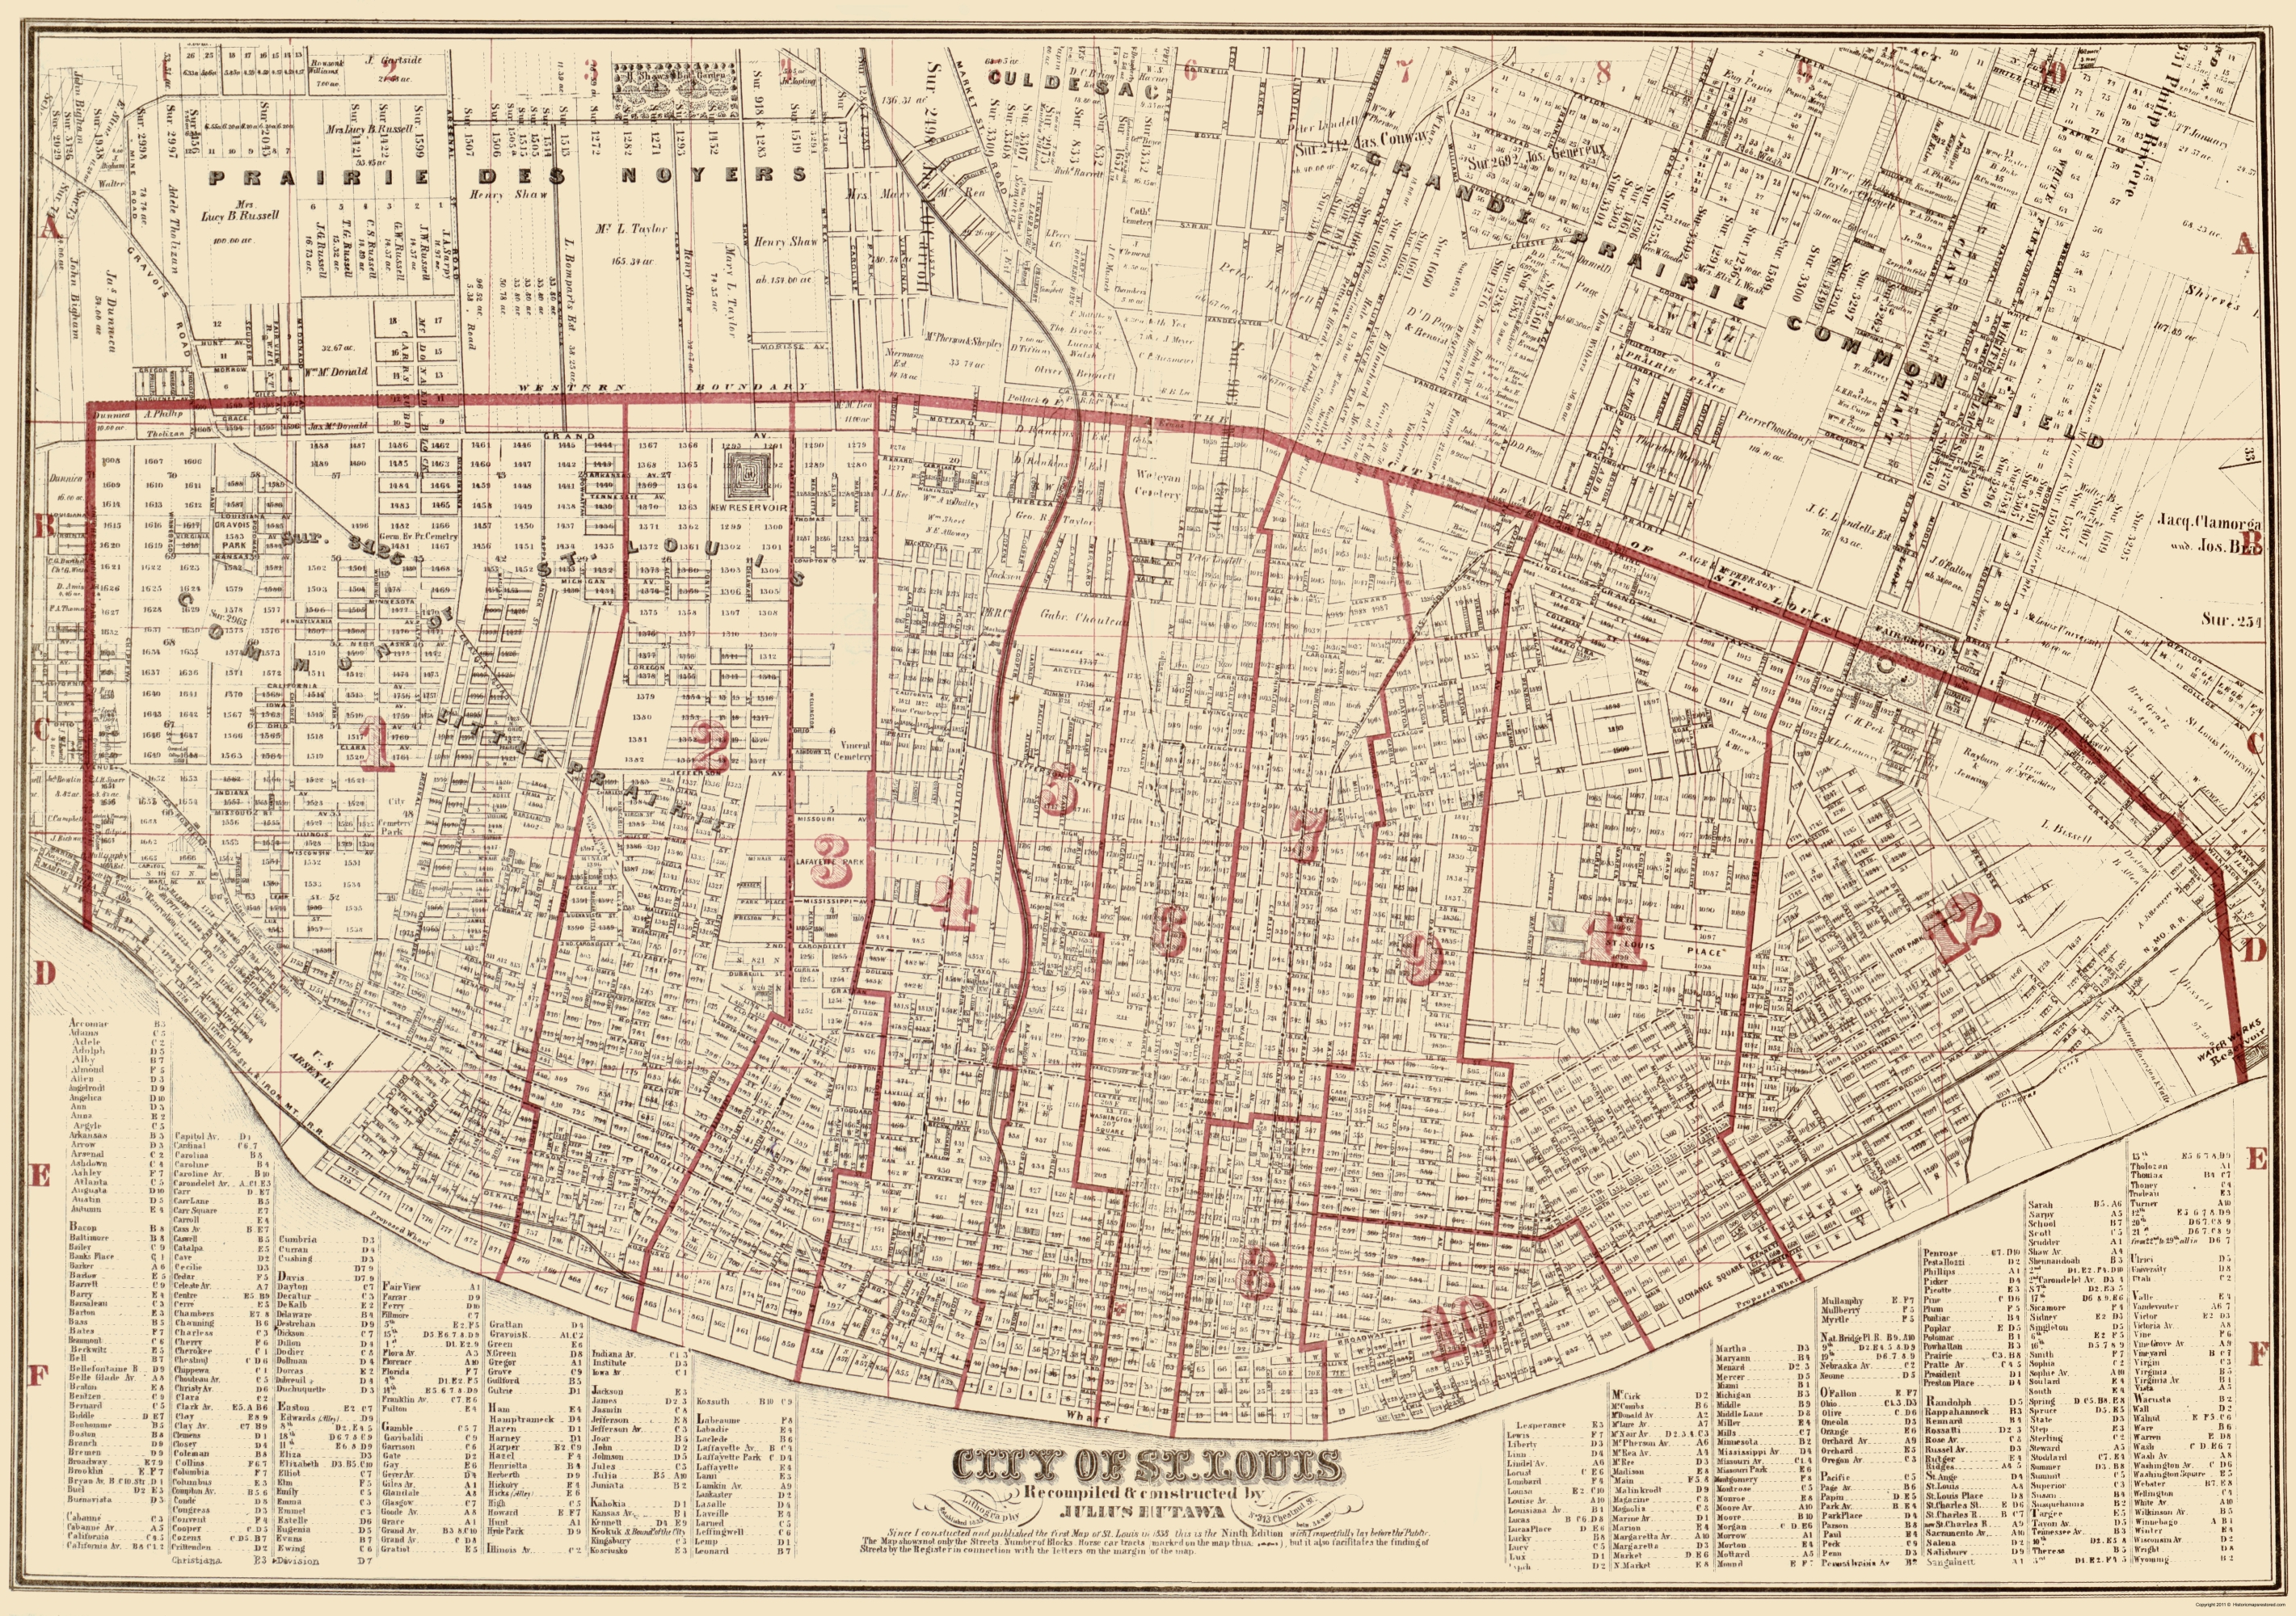 Old City Map - St. Louis Missouri - Hutawa 1870